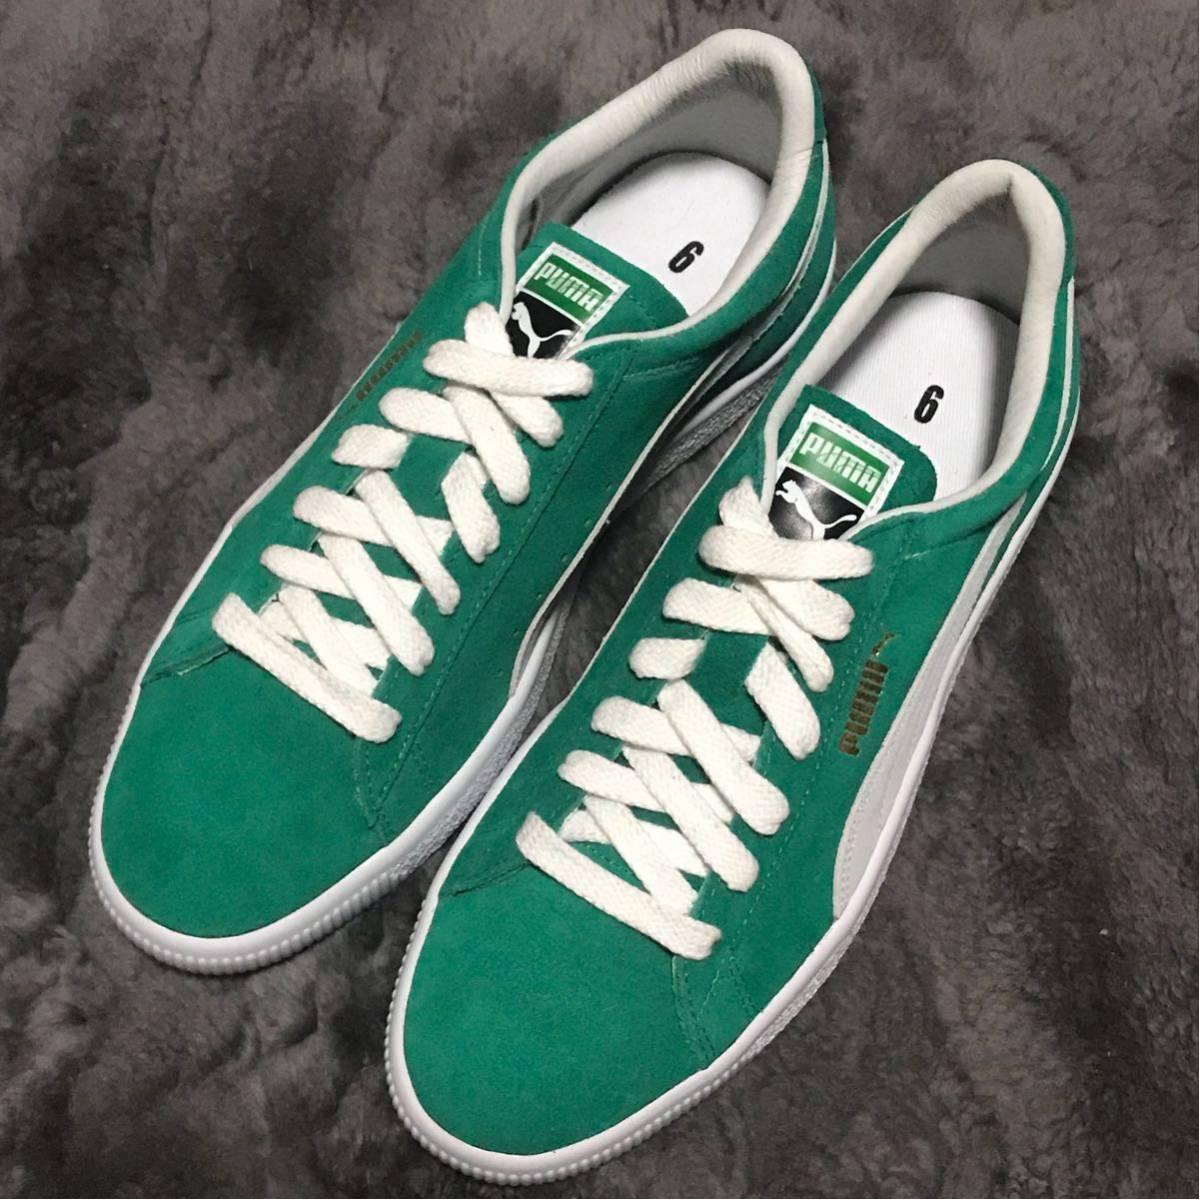 outlet store 1d58a 2189d new goods unused 28cm puma suede 90681 kelly green Puma ...